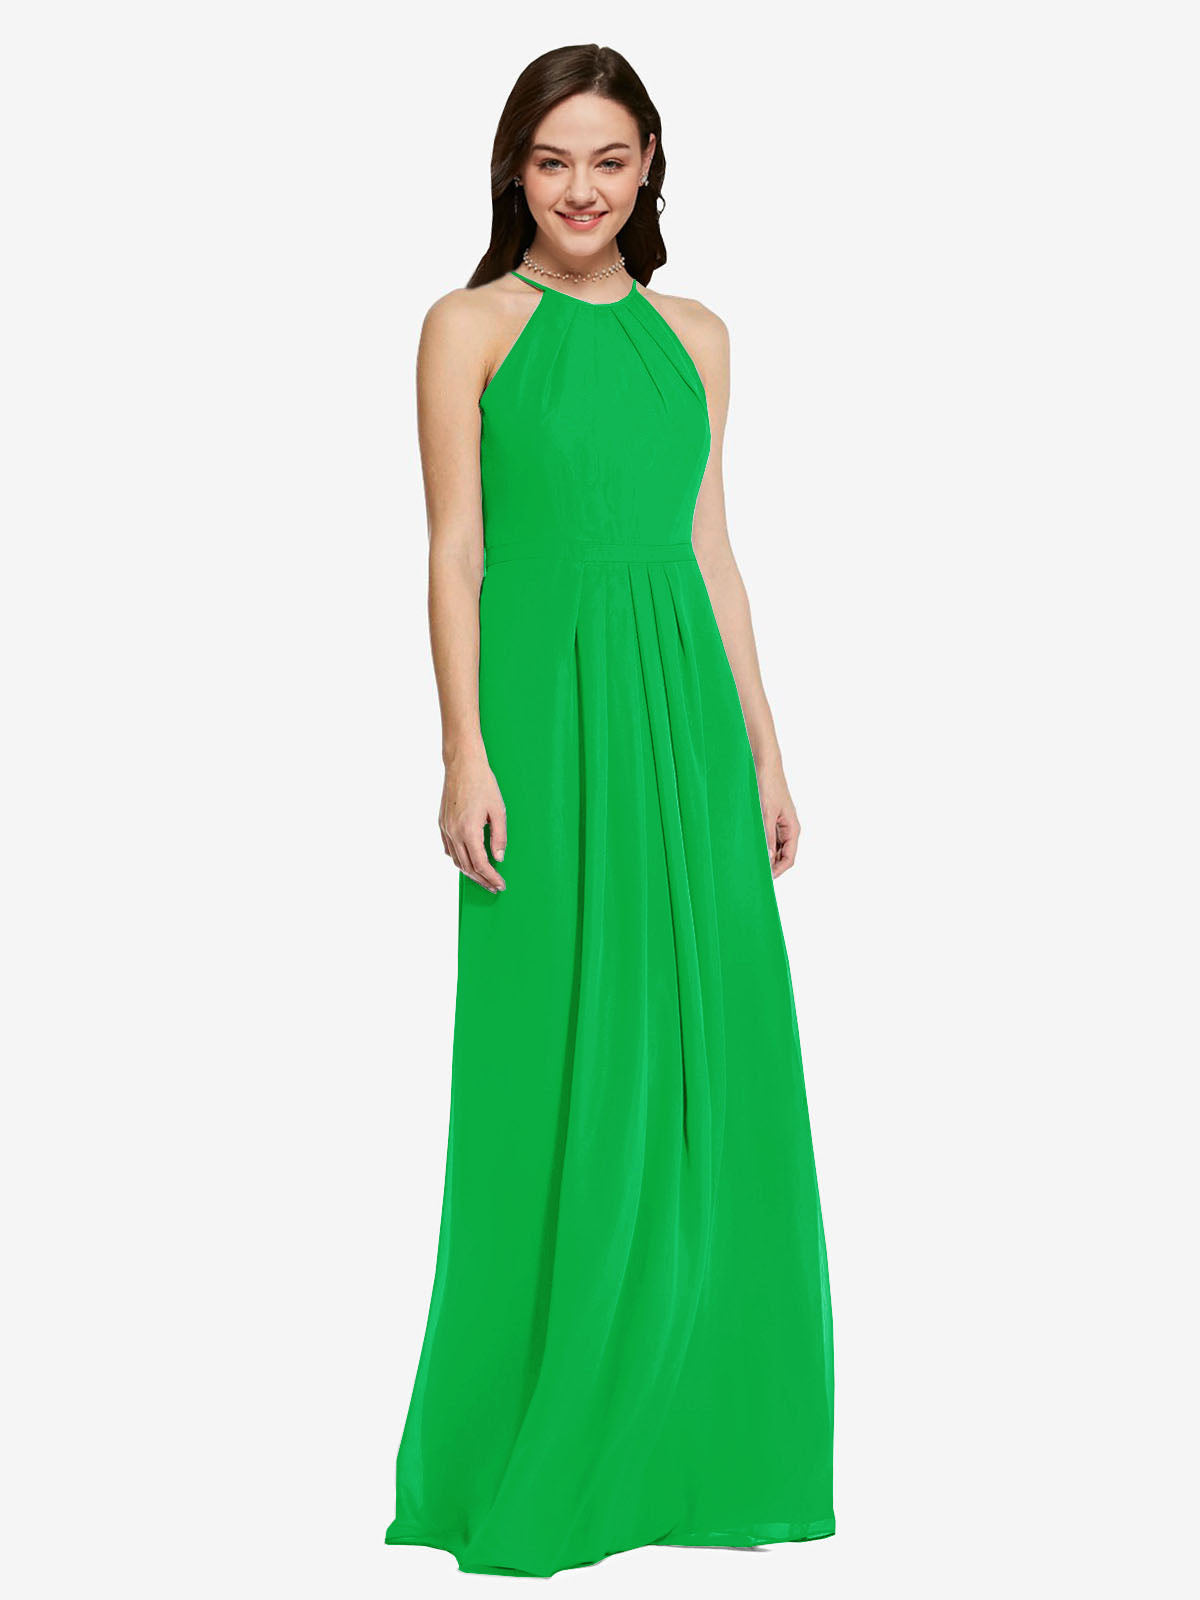 Long Sheath High Neck Halter Sleeveless Green Chiffon Bridesmaid Dress Koloti